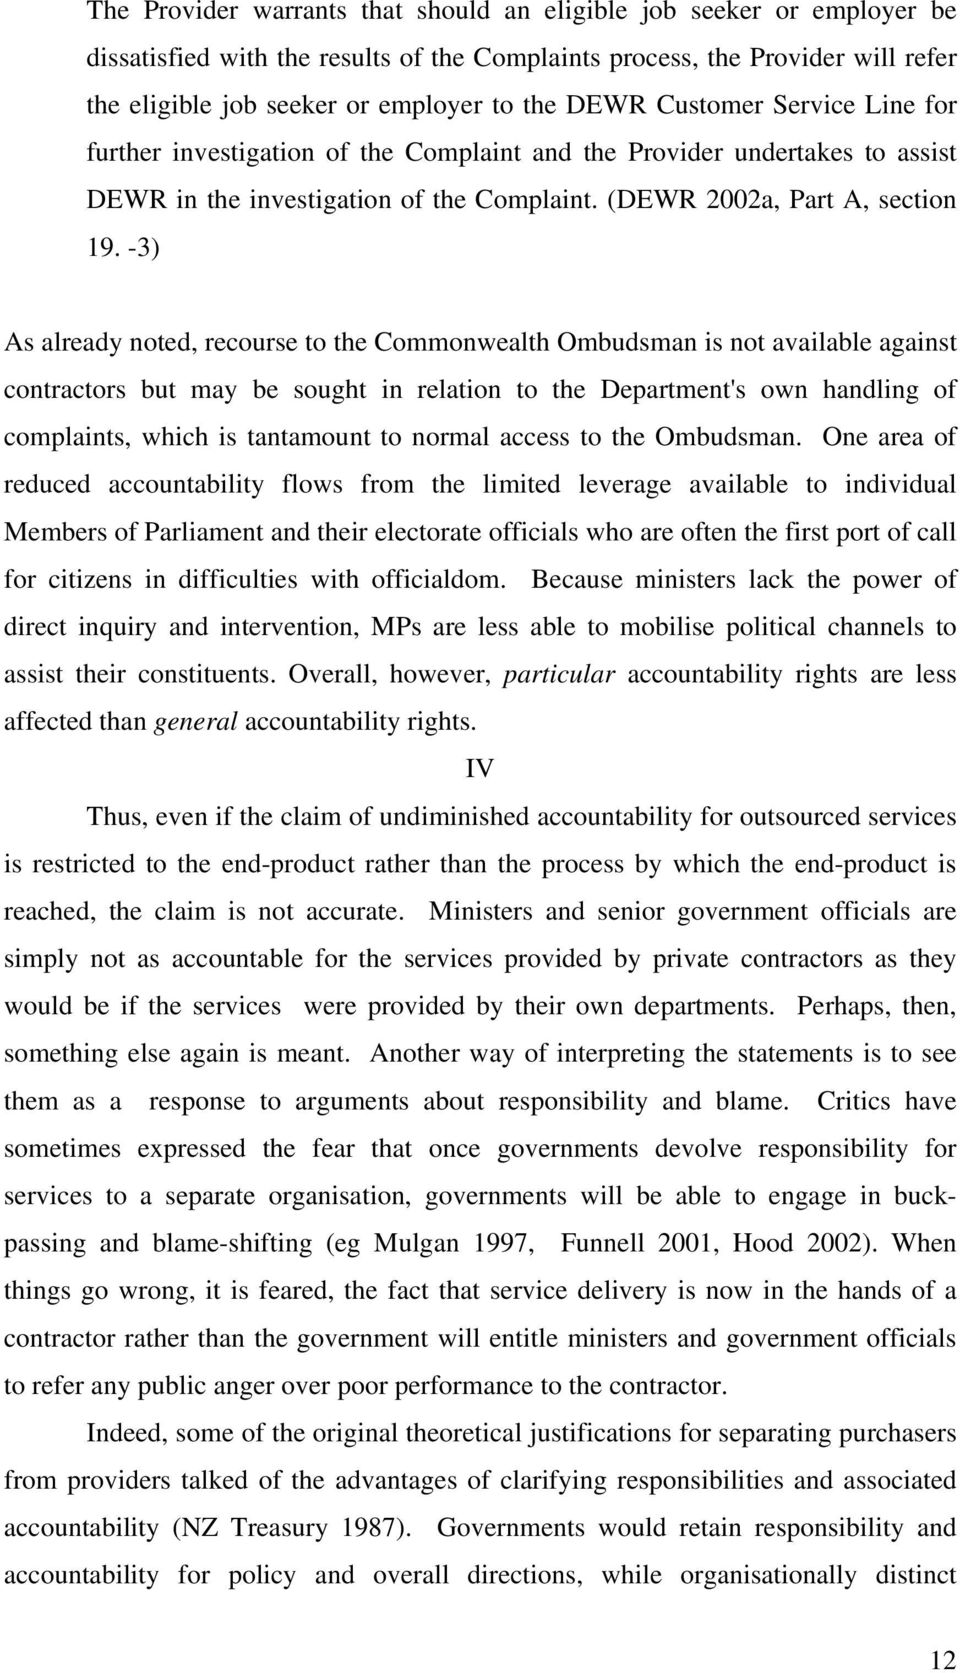 -3) As already noted, recourse to the Commonwealth Ombudsman is not available against contractors but may be sought in relation to the Department's own handling of complaints, which is tantamount to